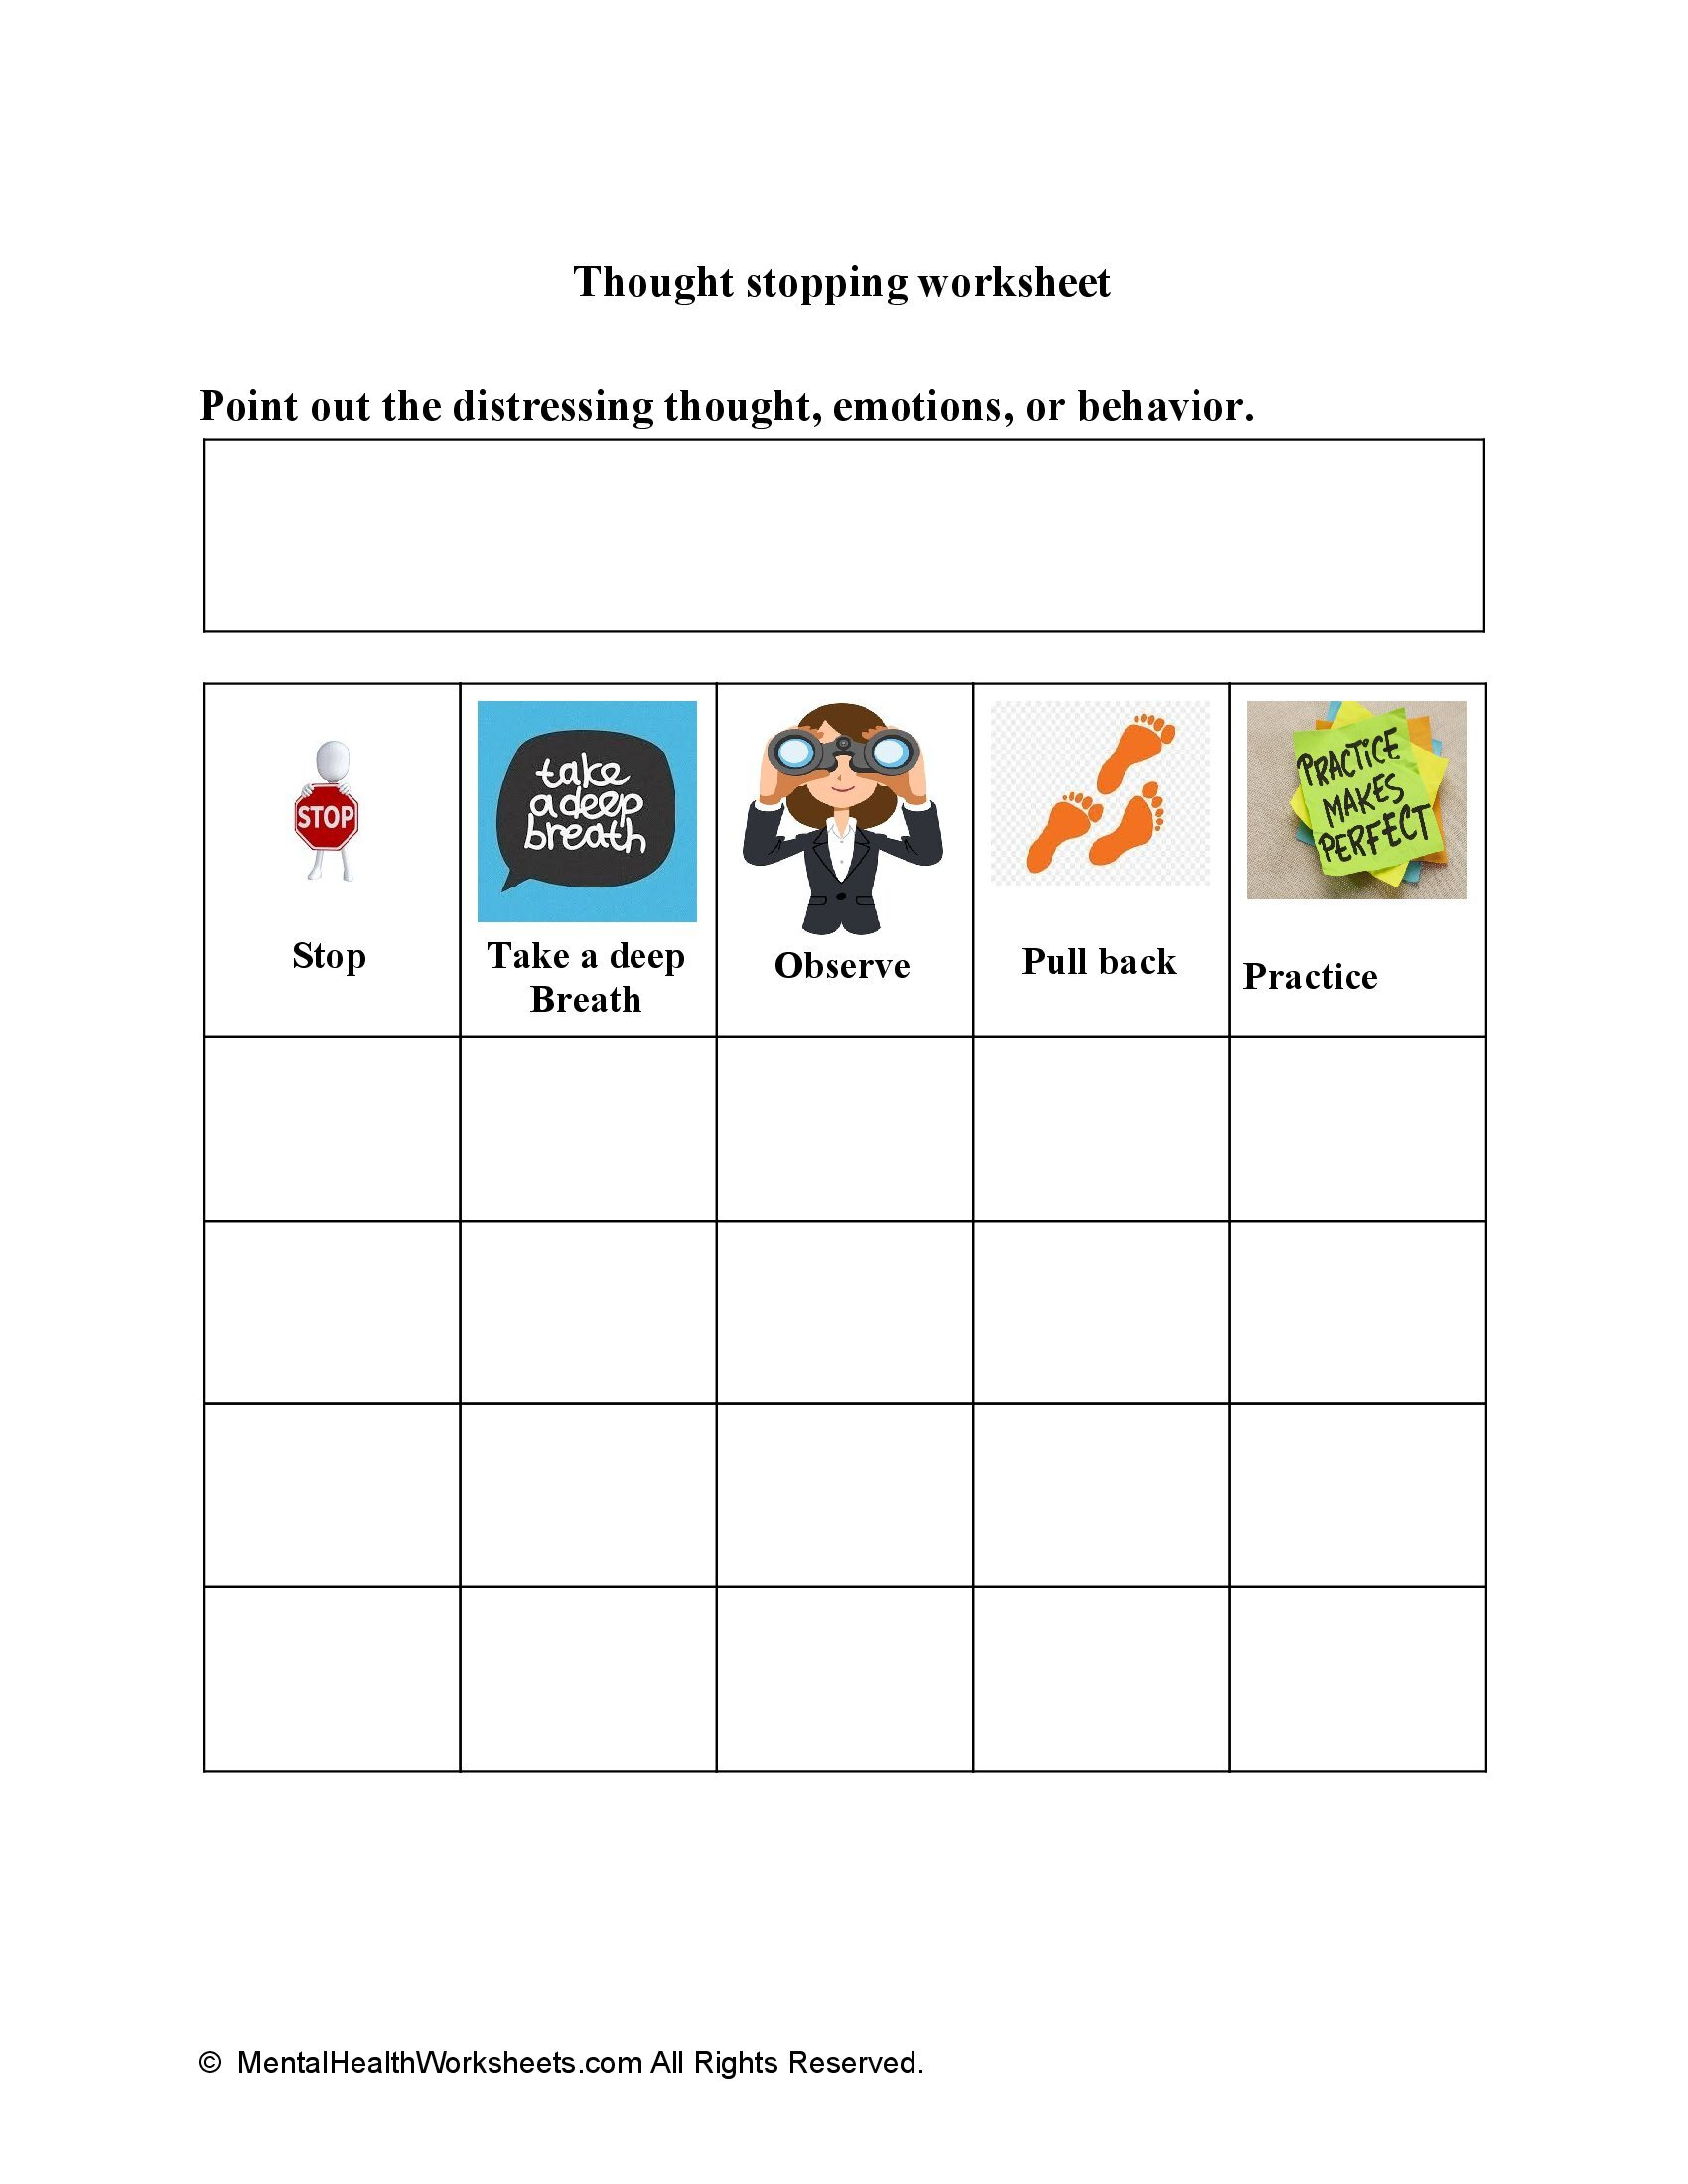 Thought stopping worksheet